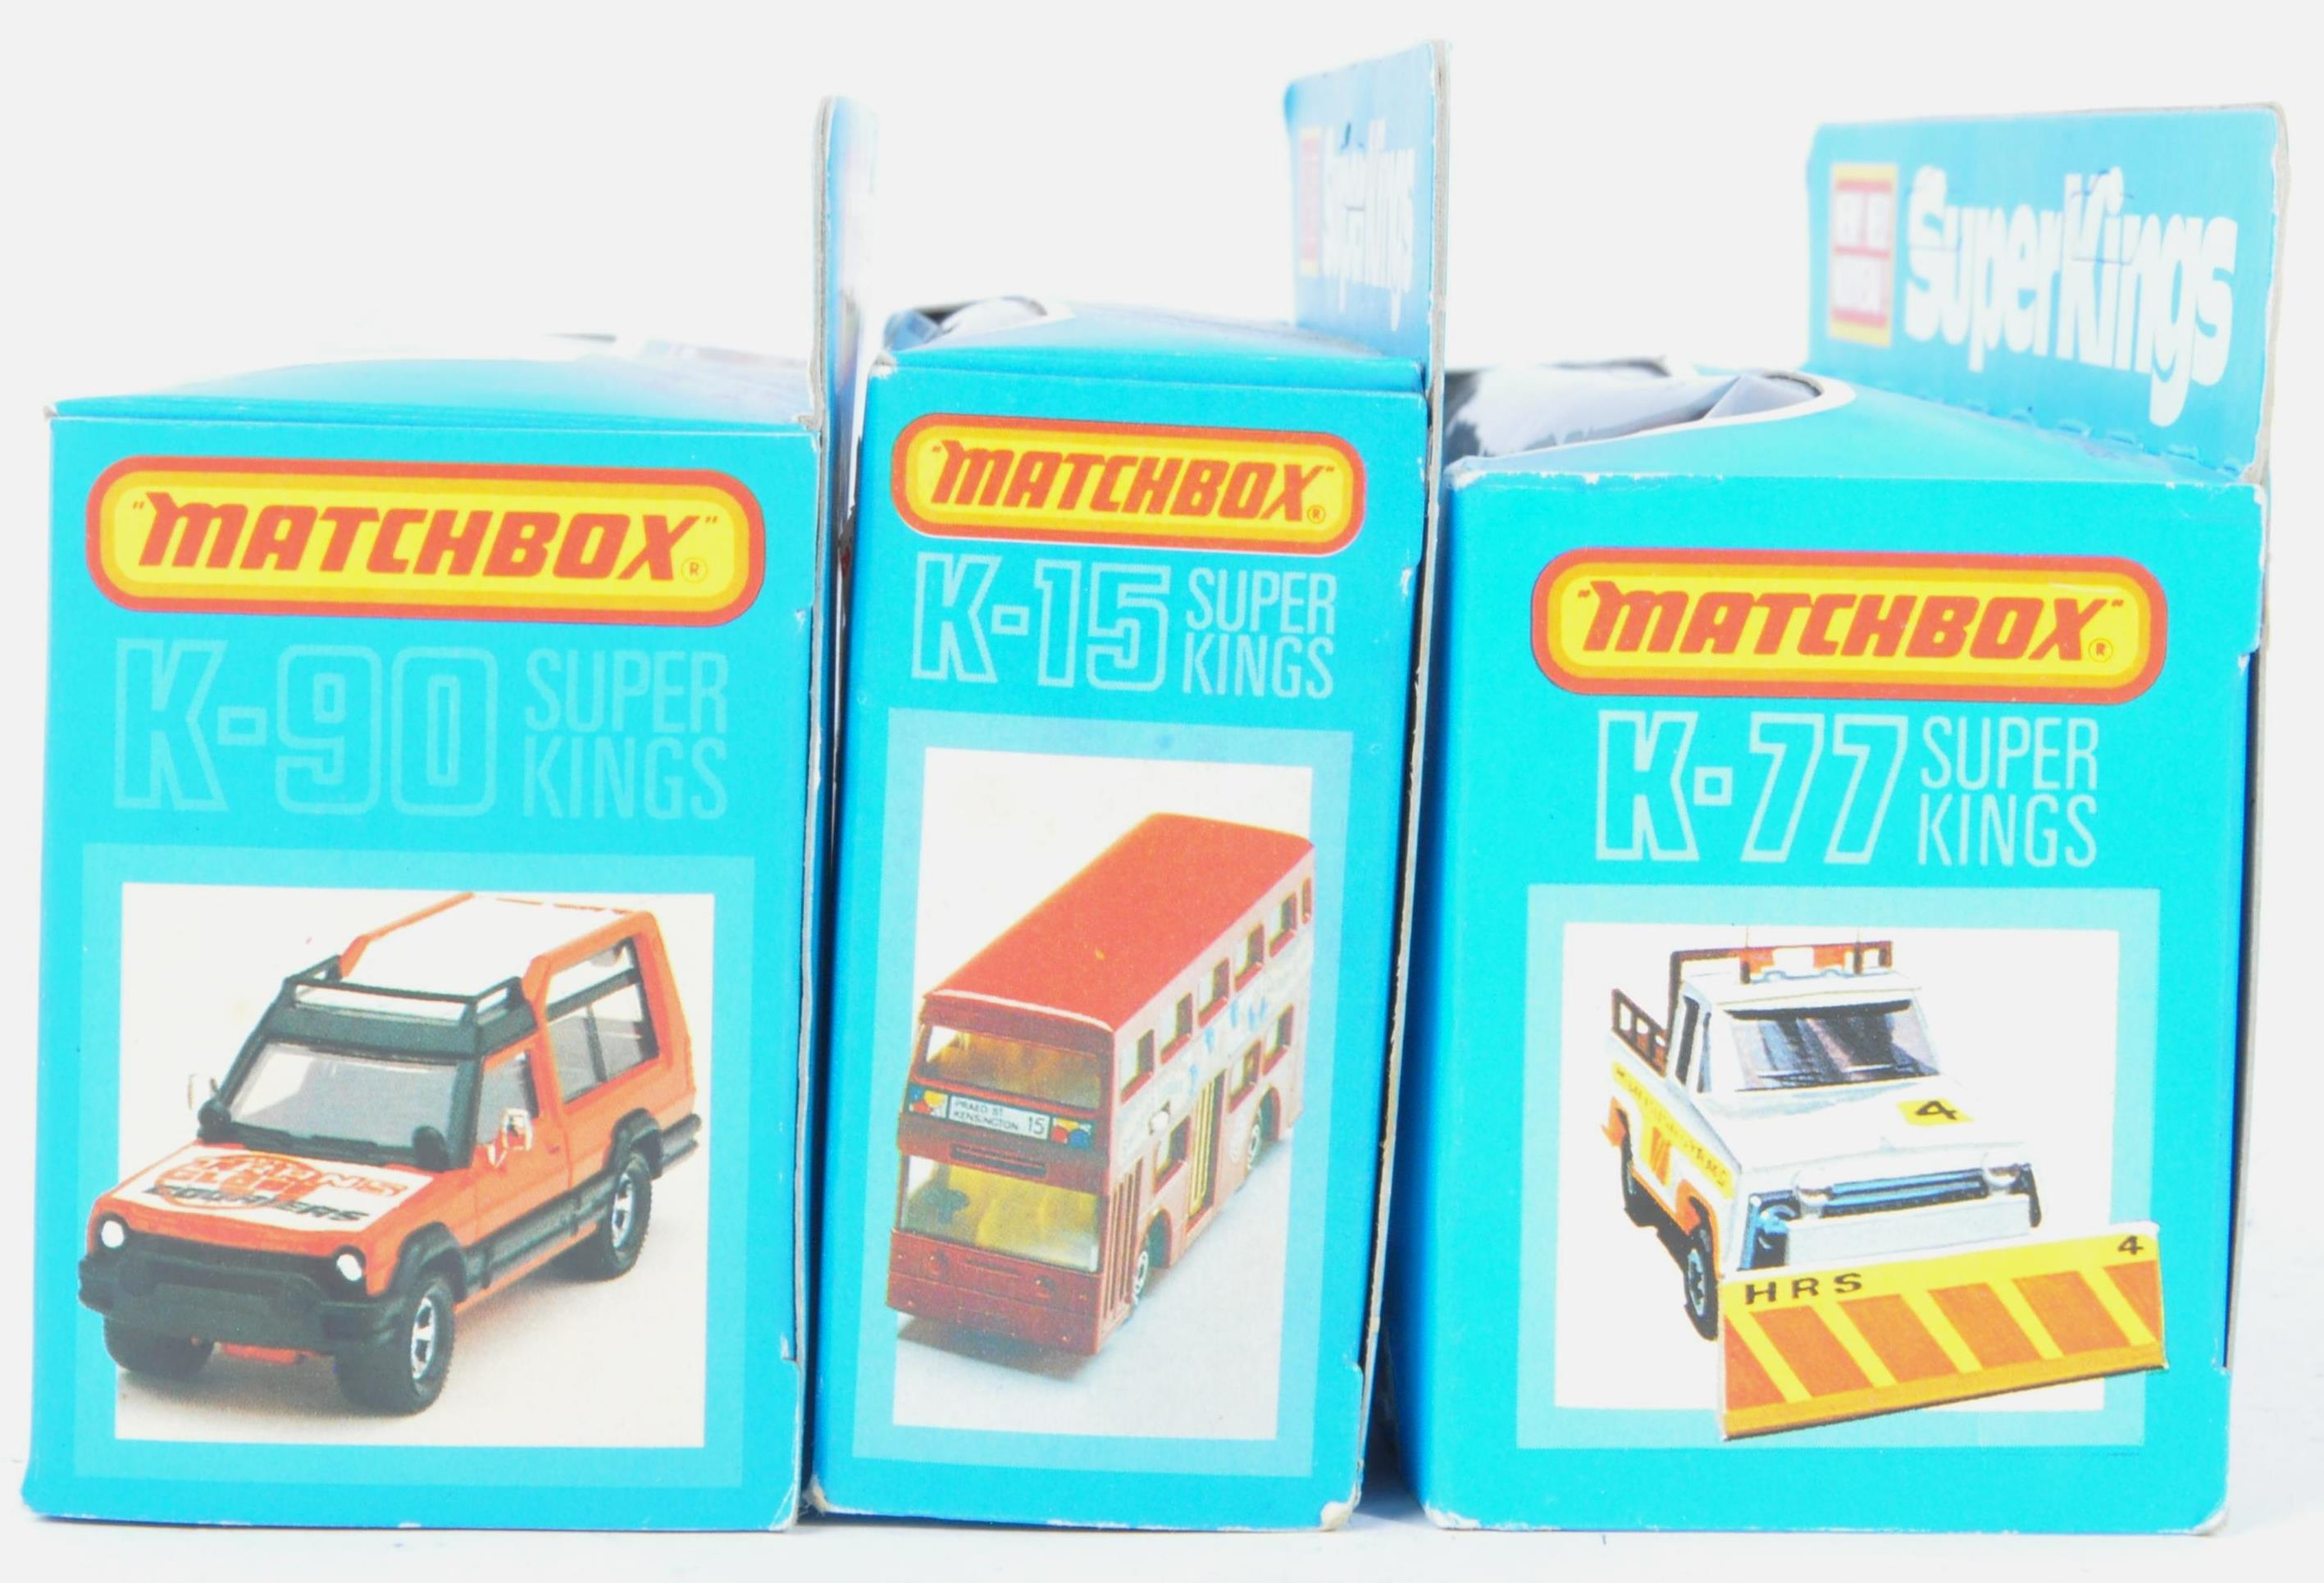 MATCHBOX SUPERKINGS - COLLECTION OF X3 MINT BOXED DIECAST MODELS - Image 5 of 5